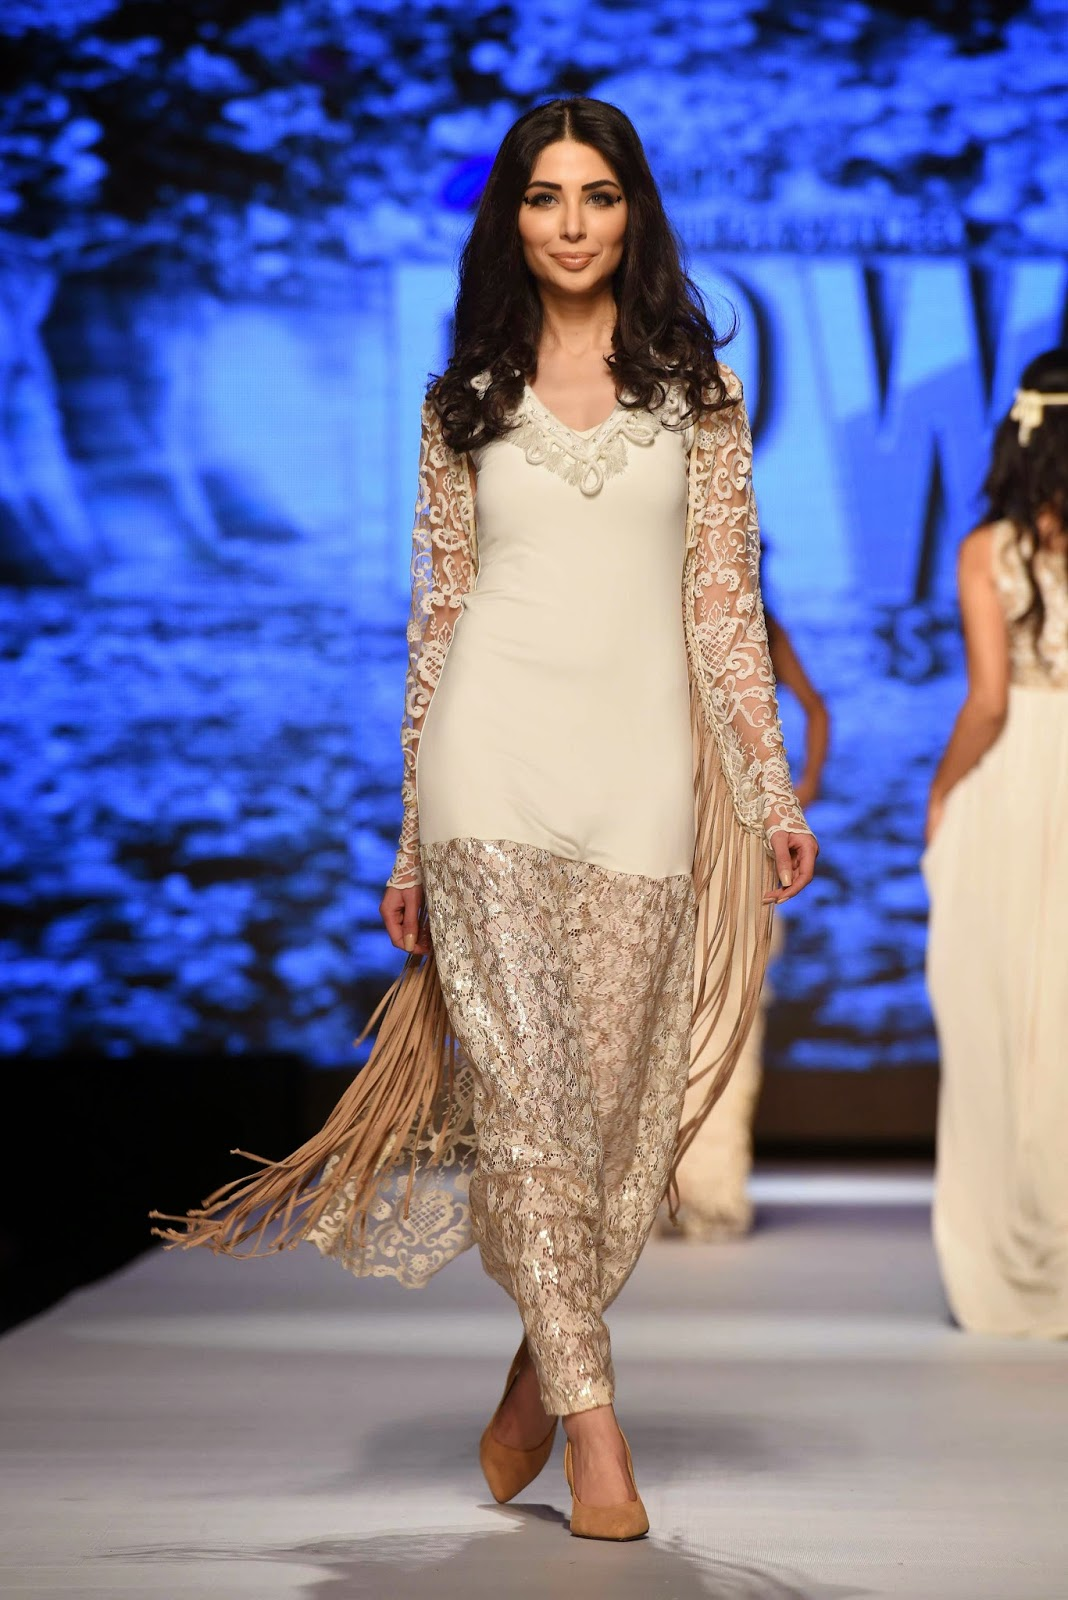 sabeeka imam for fnk asia TFPW15